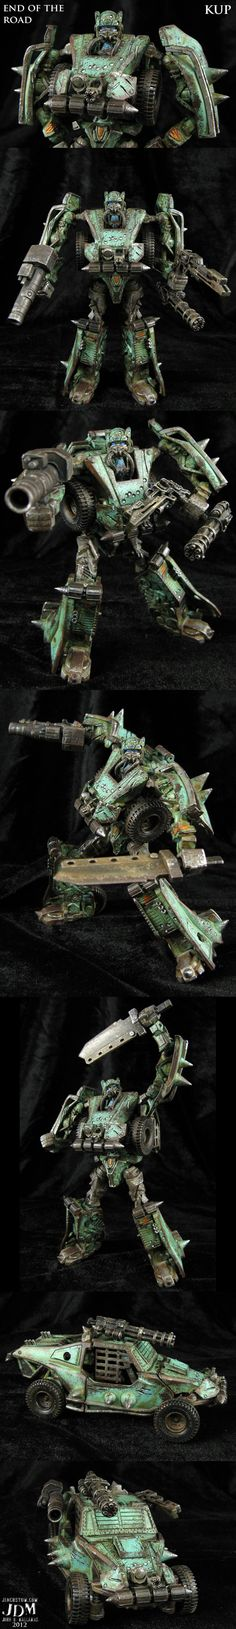 End of the Road Transformers Kup by *Jin-Saotome on deviantART